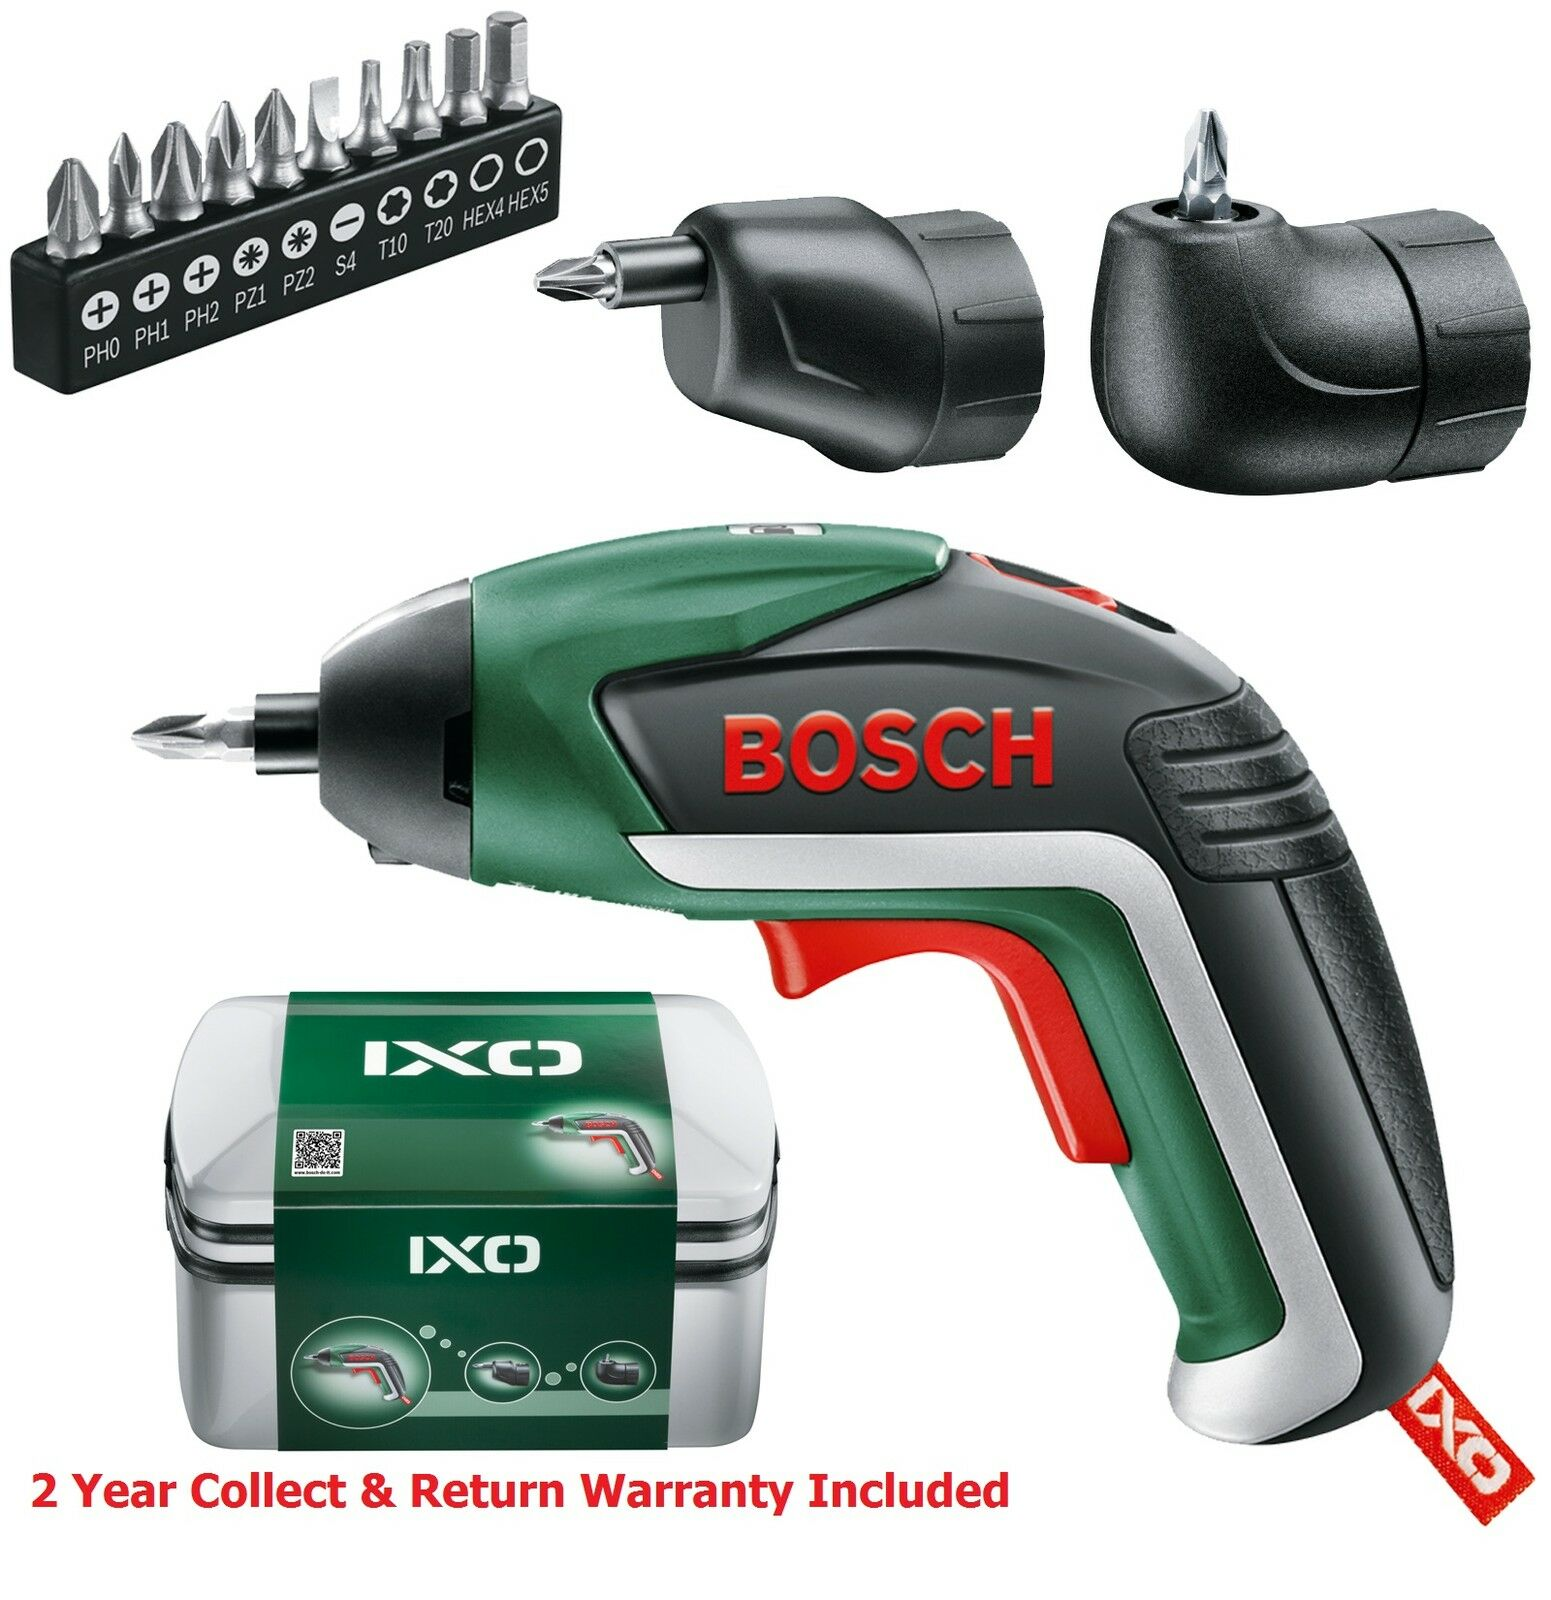 full set bosch ixo 5 lithium ion cordless screwdriver 06039a8072 3165140800051 39. Black Bedroom Furniture Sets. Home Design Ideas